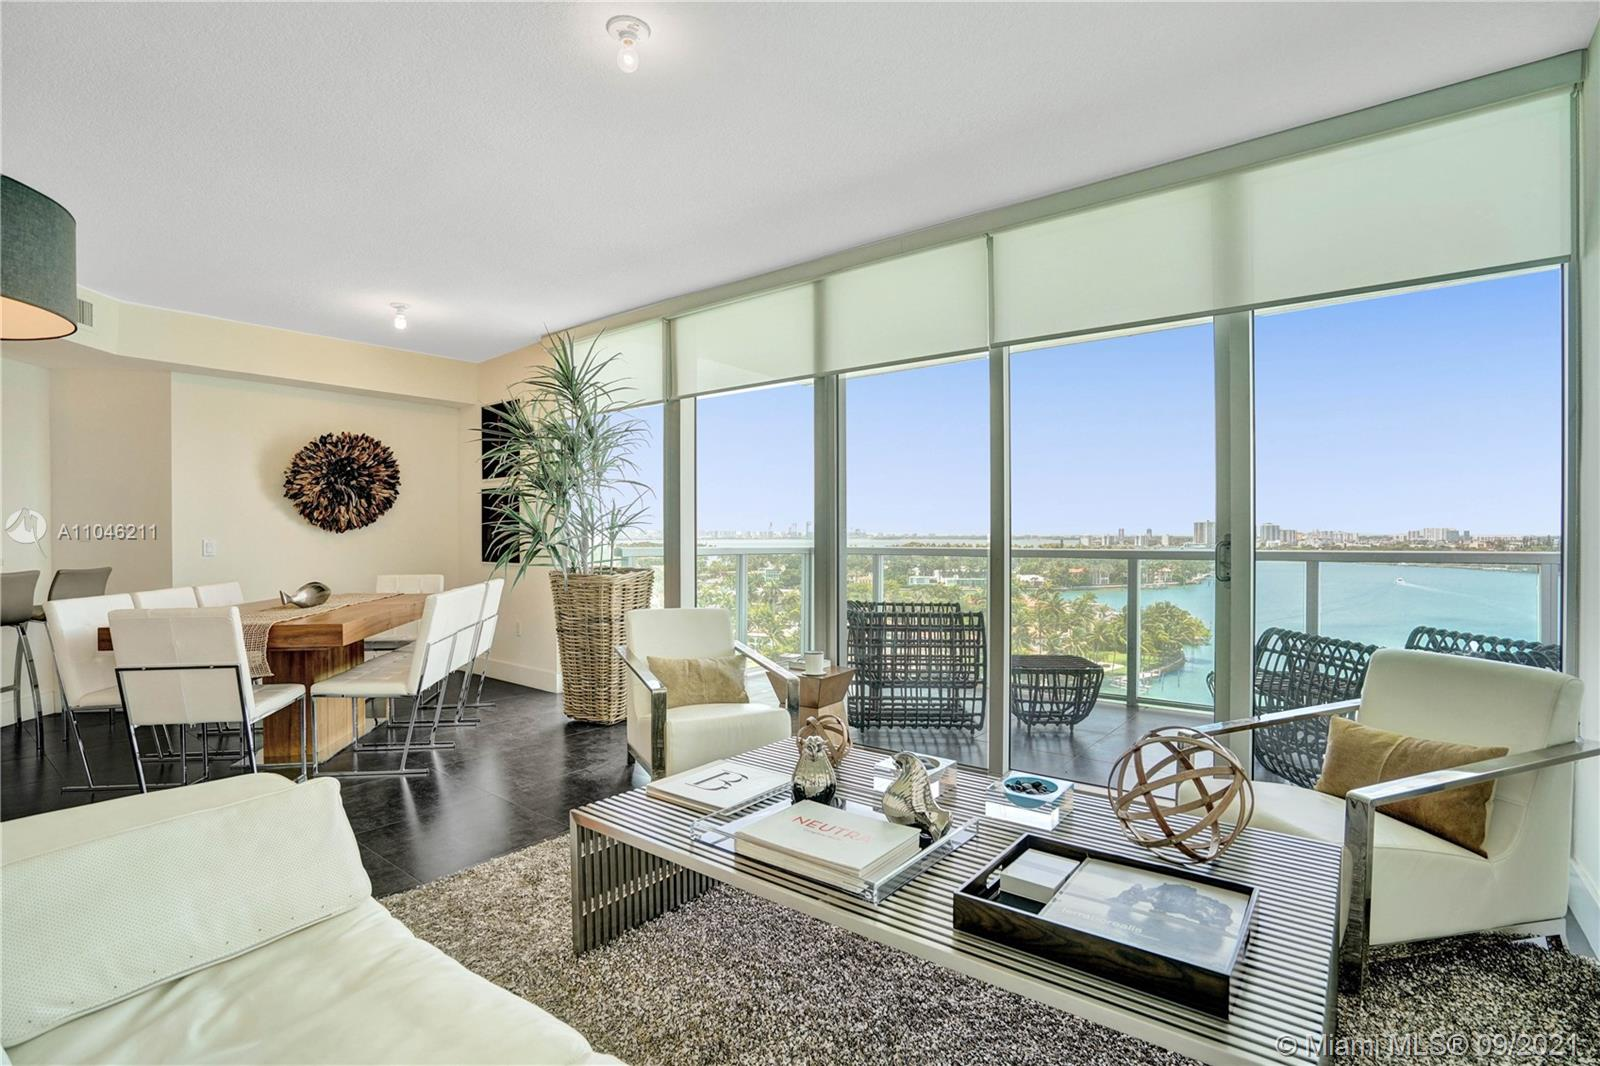 Facing Alison Island and Normandy Isle this corner unit located in North Shore offers amazing intracoastal and ocean views and Miami skyline in the distance. Designer decoration with attention to detail and impeccable taste. Tobbaco terrazo flooring throughout including terraces. Living and dining area with water views and close to the open kitchen perfect for entertainment. Main bedroom with walk-in closet and private office area. 2 junior suites with views and access to private terraces. 3 full bathrooms and 1 powder room. 2 parking spaces.  Eden House boutique building offers 24/7 front desk attendance, valet parking, management in the building, state-of-the art gym with water views, pool overlooking the intracoastal, waterfront cabanas, paddle board lift and more. Offered furnished.